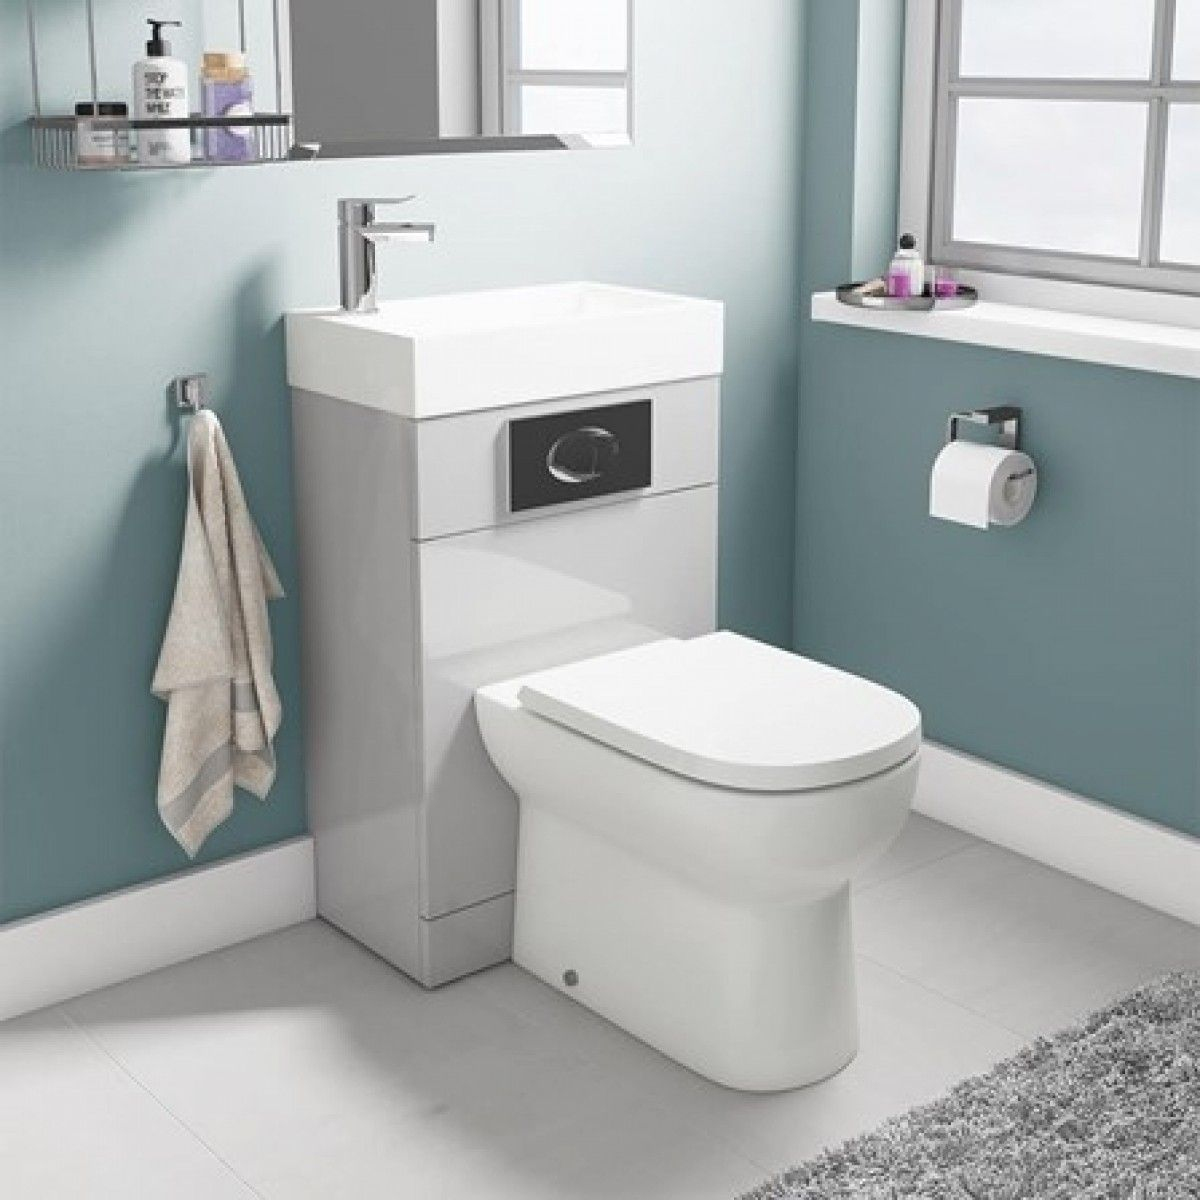 Vellamo Structure All In One Gloss Grey Basin Toilet Unit With D Shaped Pan Seat 500mm